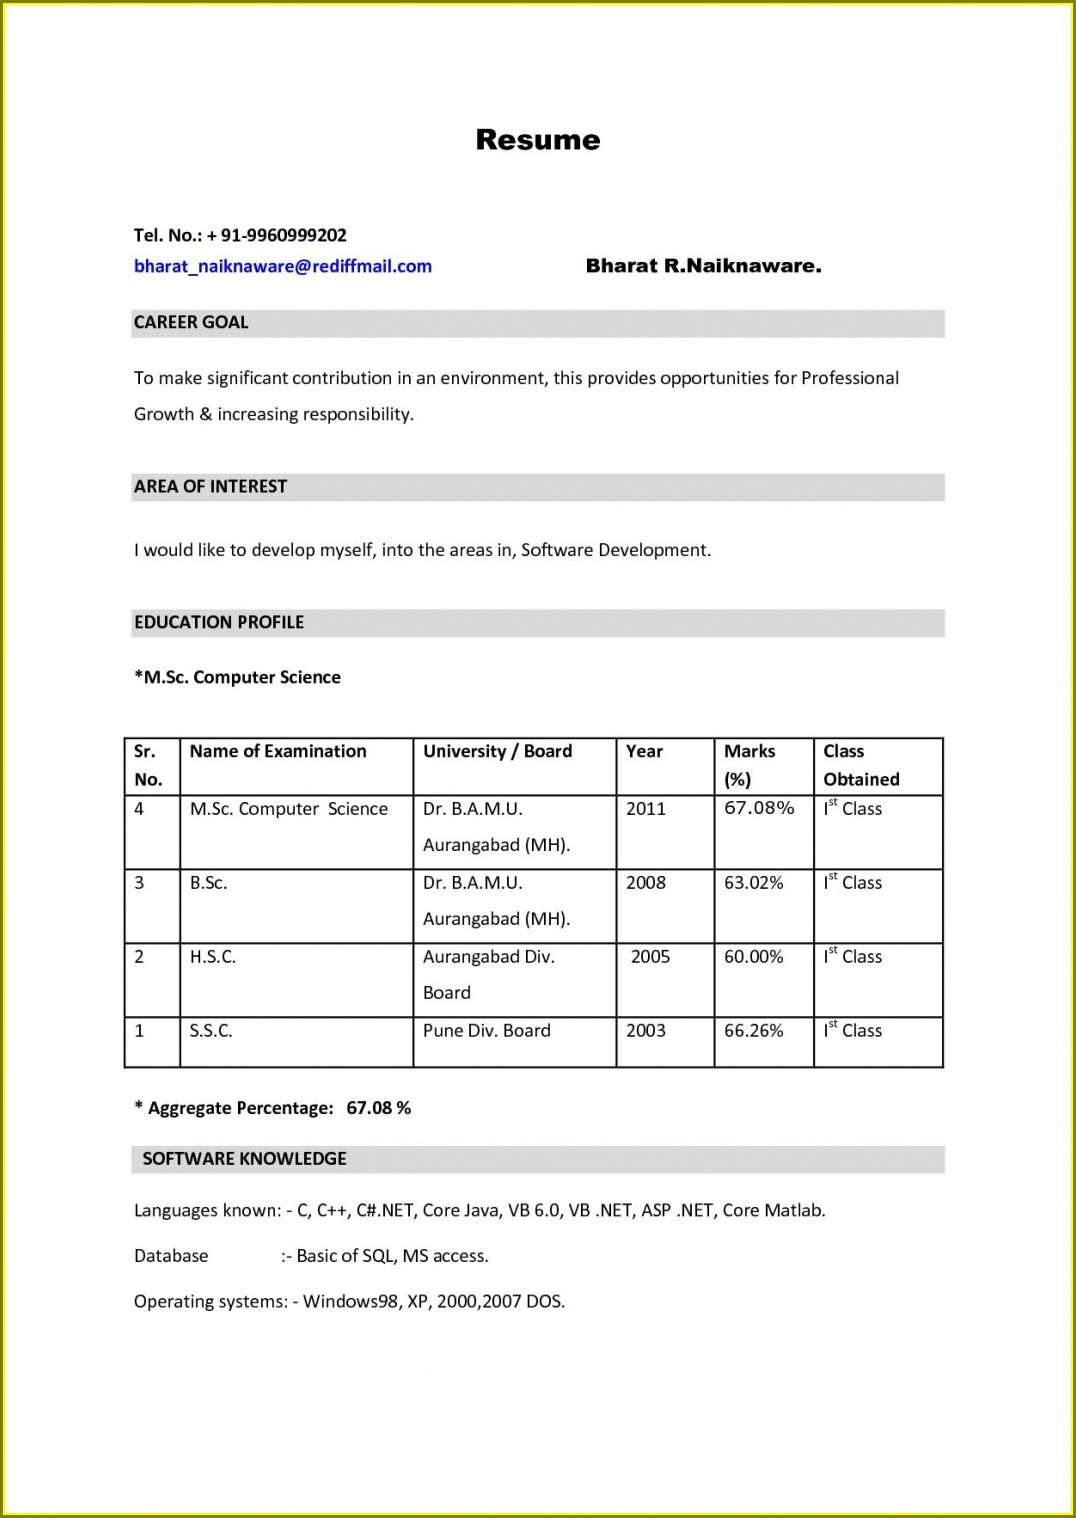 Resume Format Doc For Freshers Mba